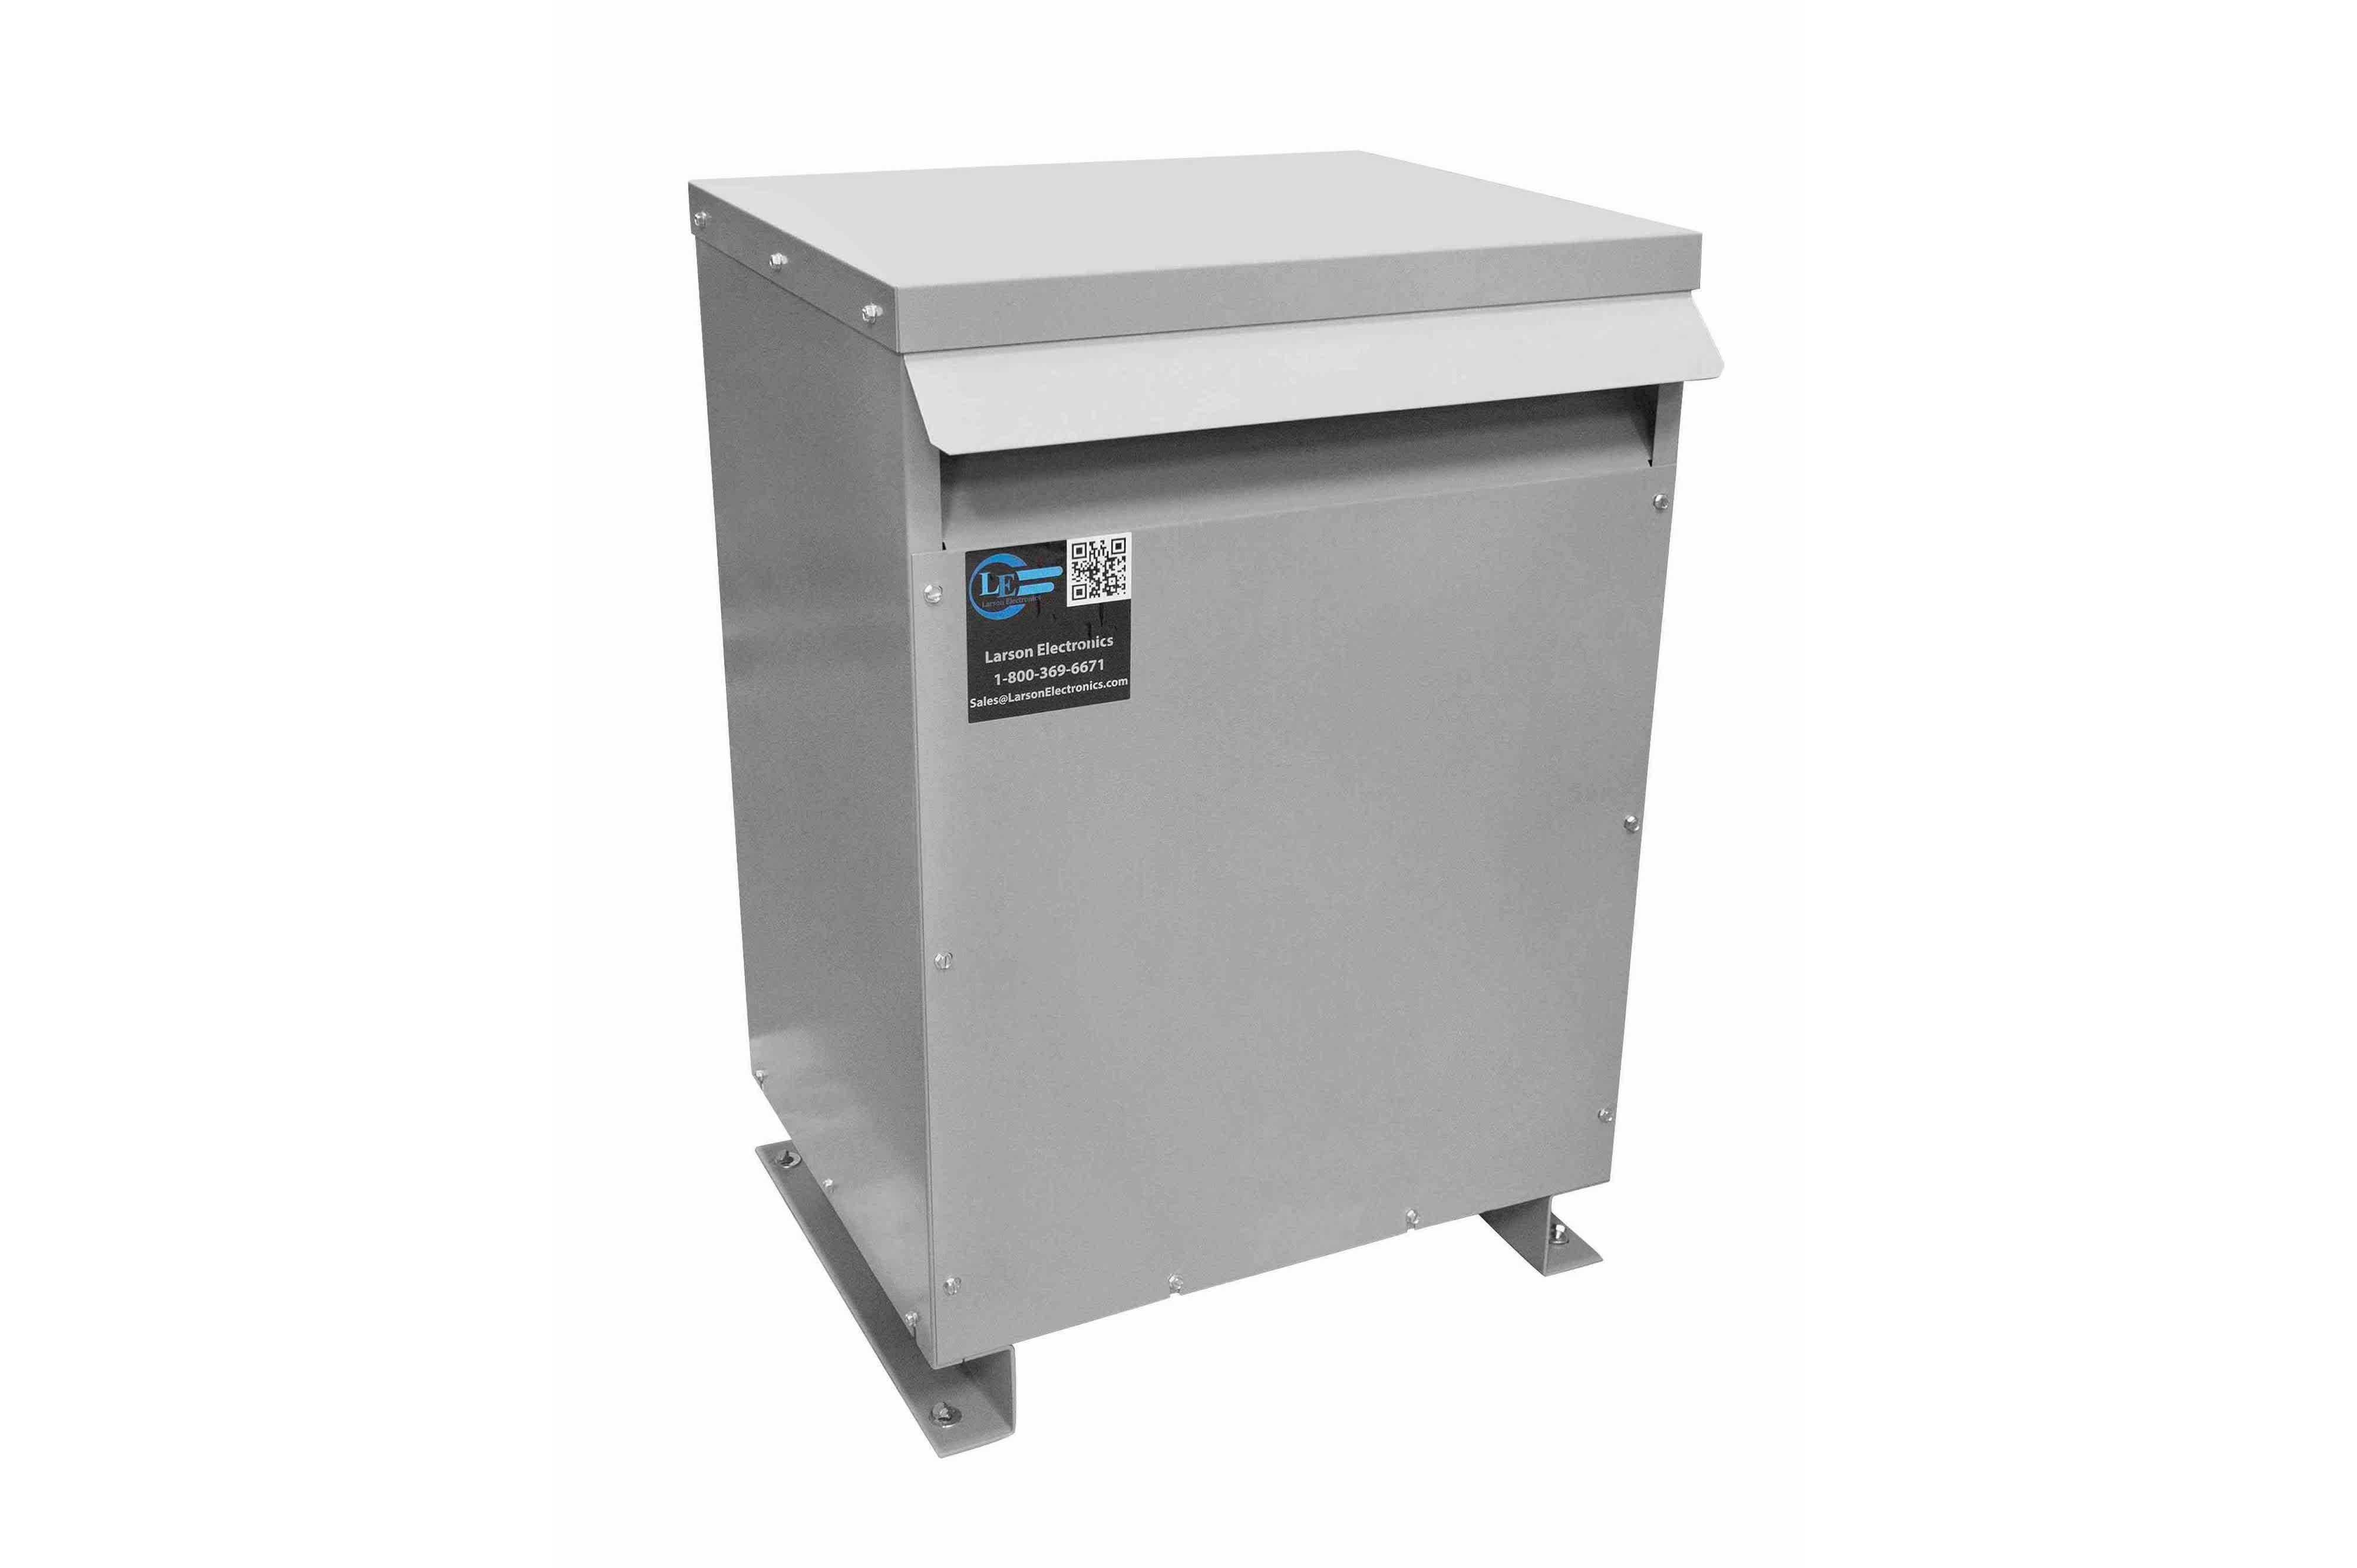 26 kVA 3PH Isolation Transformer, 600V Wye Primary, 400Y/231 Wye-N Secondary, N3R, Ventilated, 60 Hz